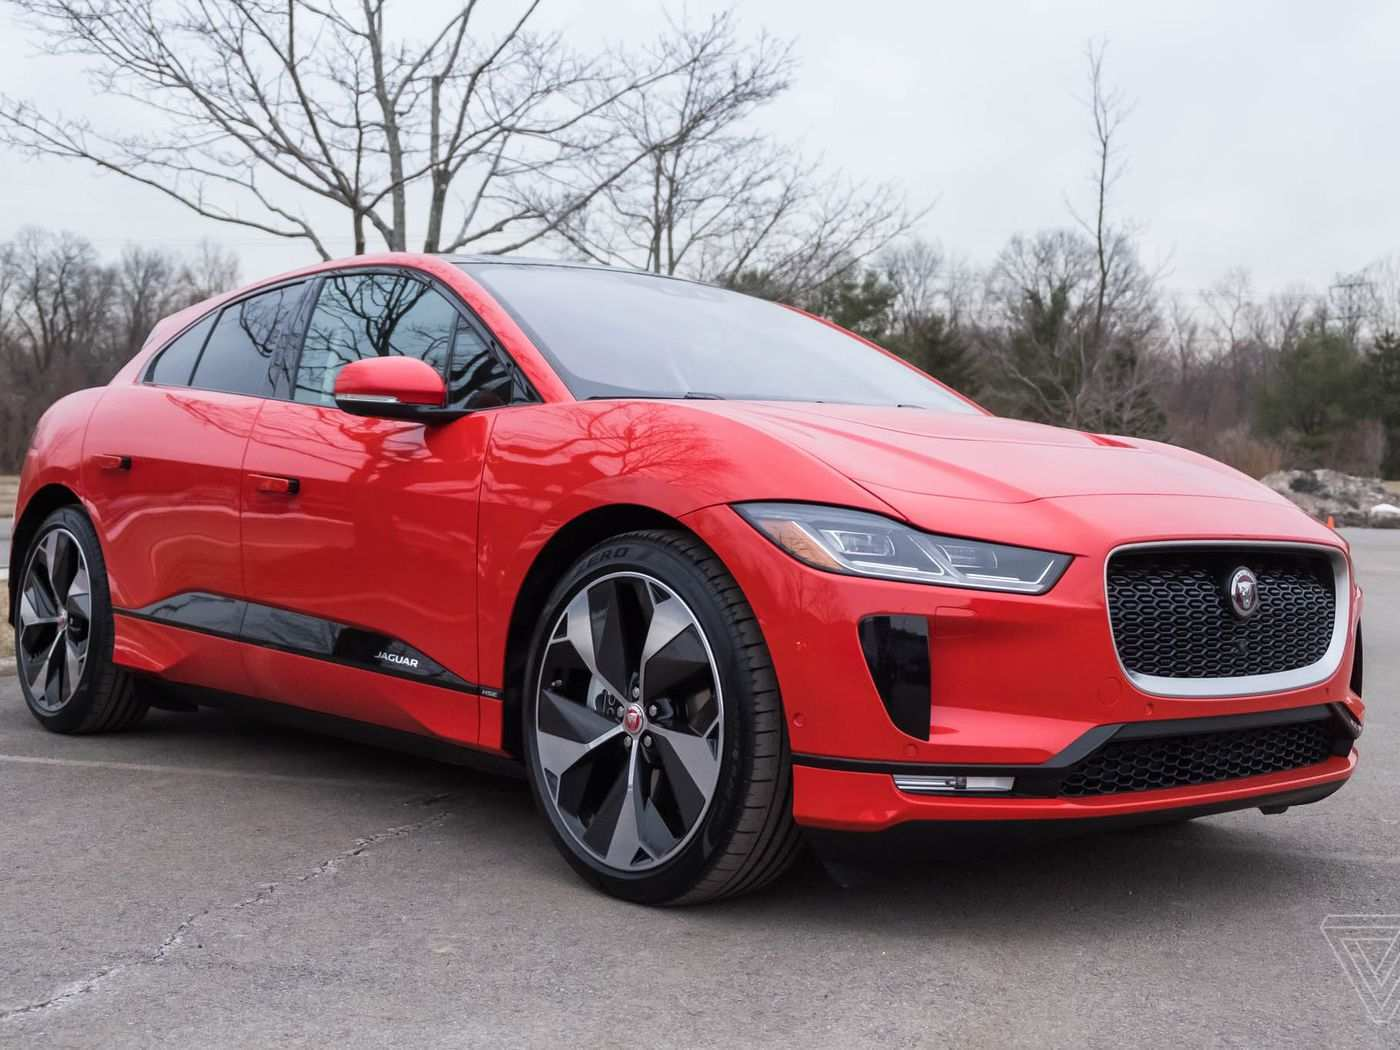 40 New 2020 Jaguar I Pace Electric Images for 2020 Jaguar I Pace Electric